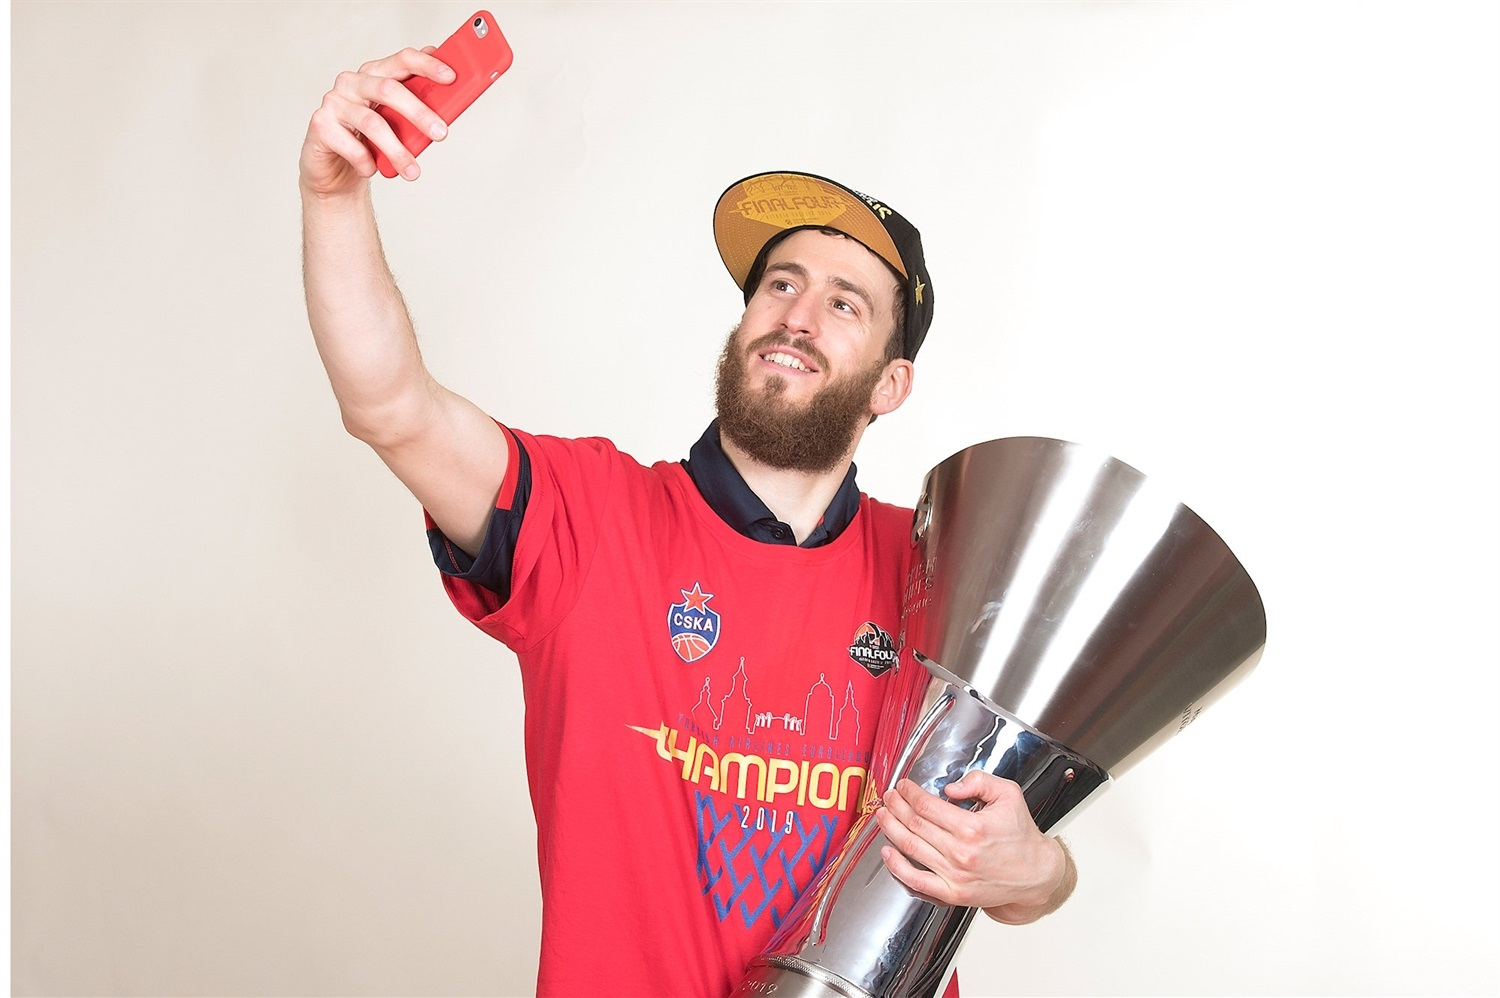 Sergio Rodriguez - CSKA trophy photo shoot - Final Four Vitoria-Gasteiz 2019 - EB18